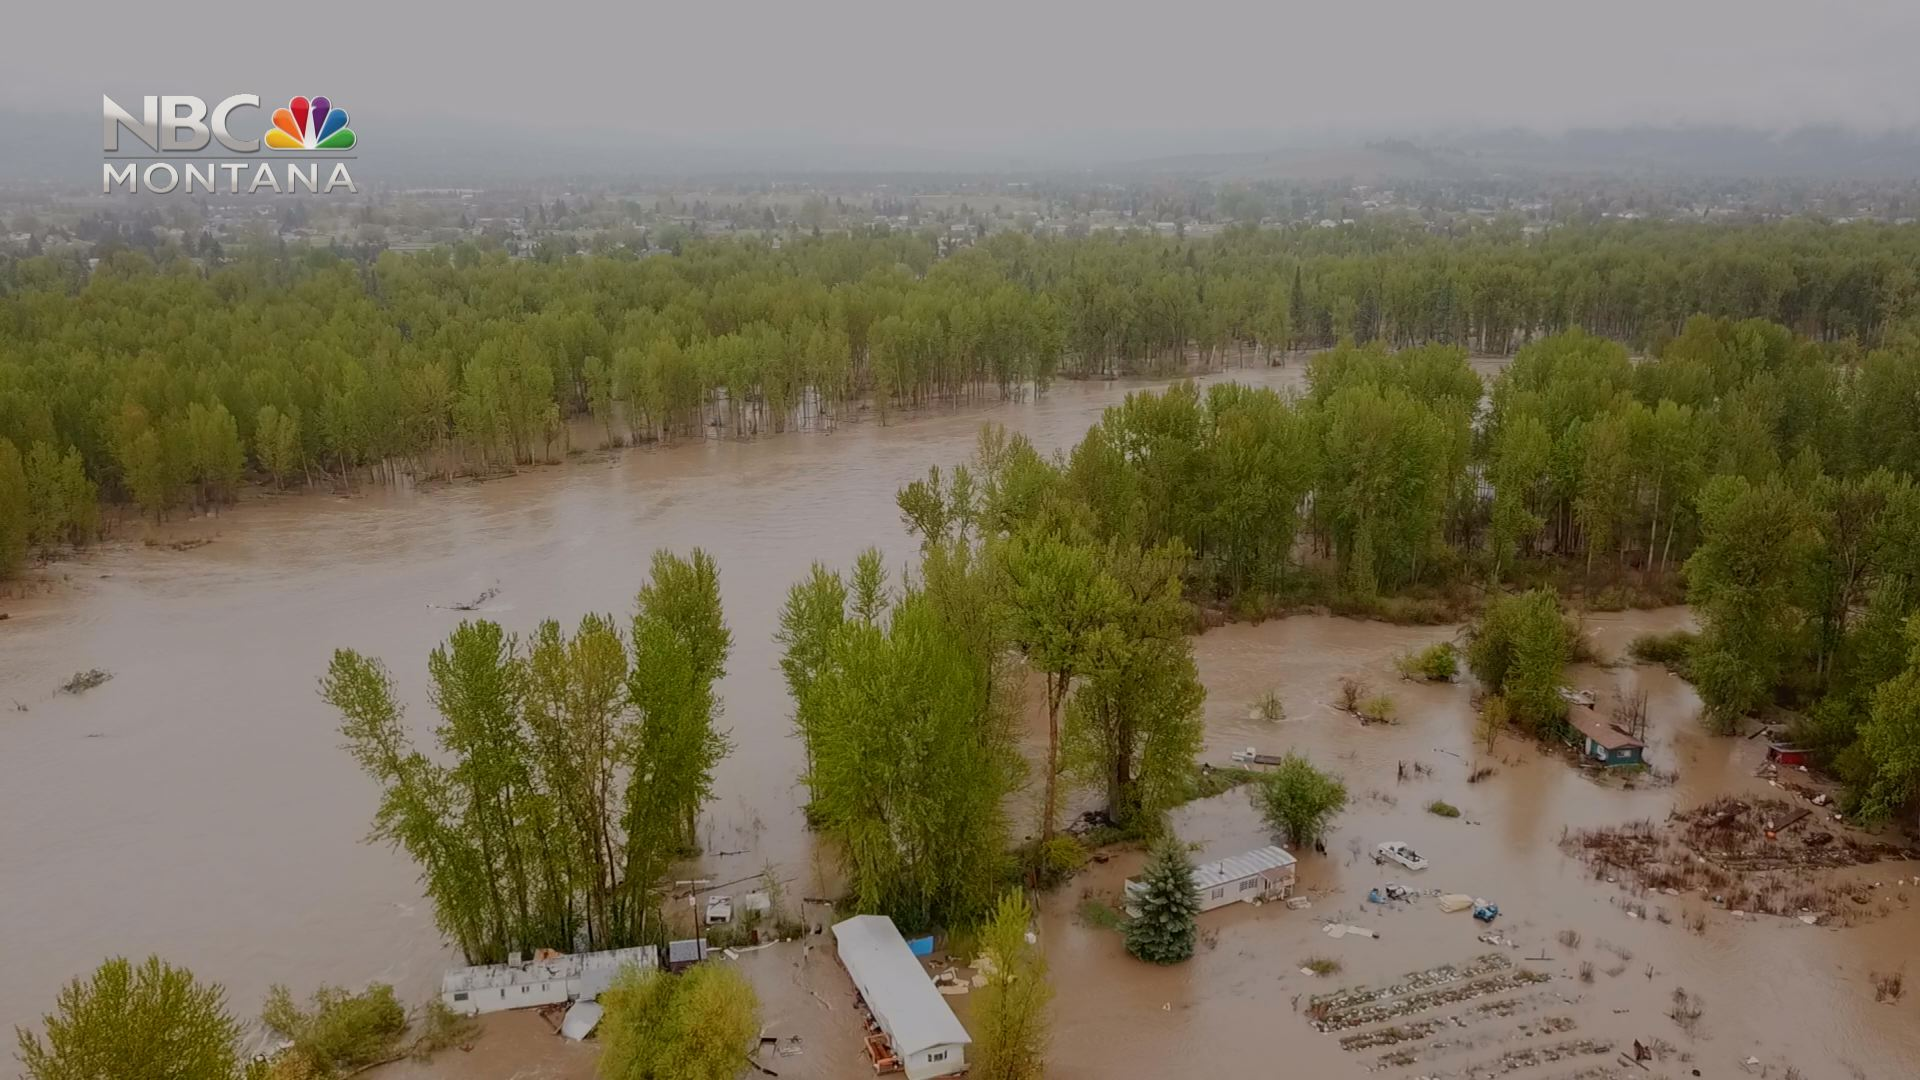 Devastating flood damage from Schmidt Road, across the Clark Fork, to the Orchard Homes neighborhood.